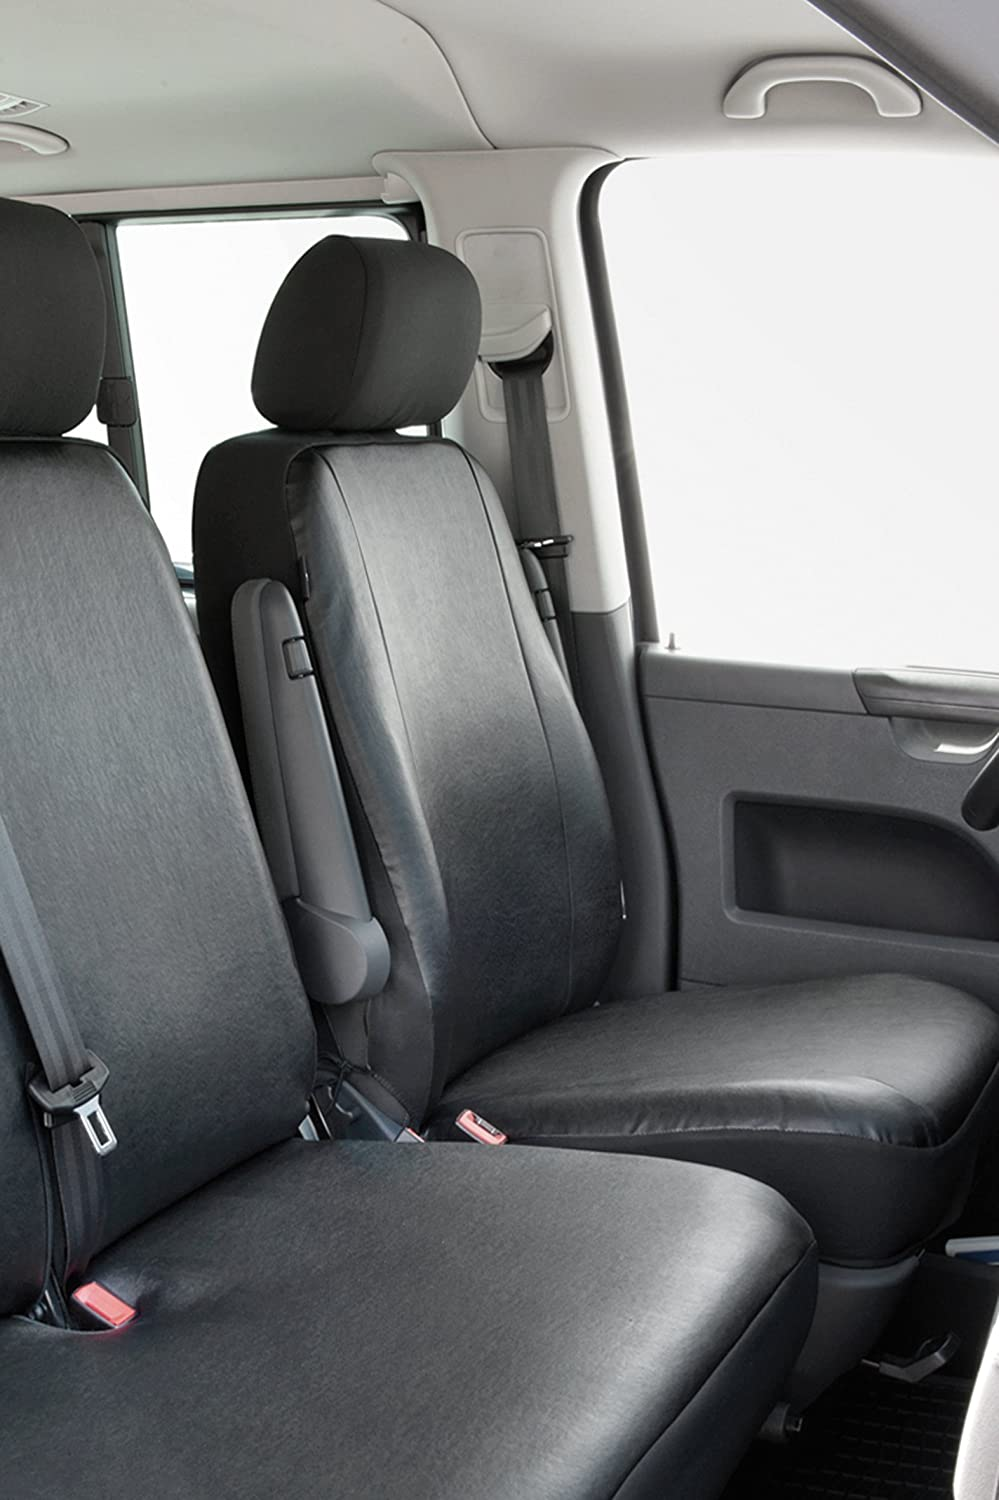 Walser 11456 Seat Covers Synthetic Leather